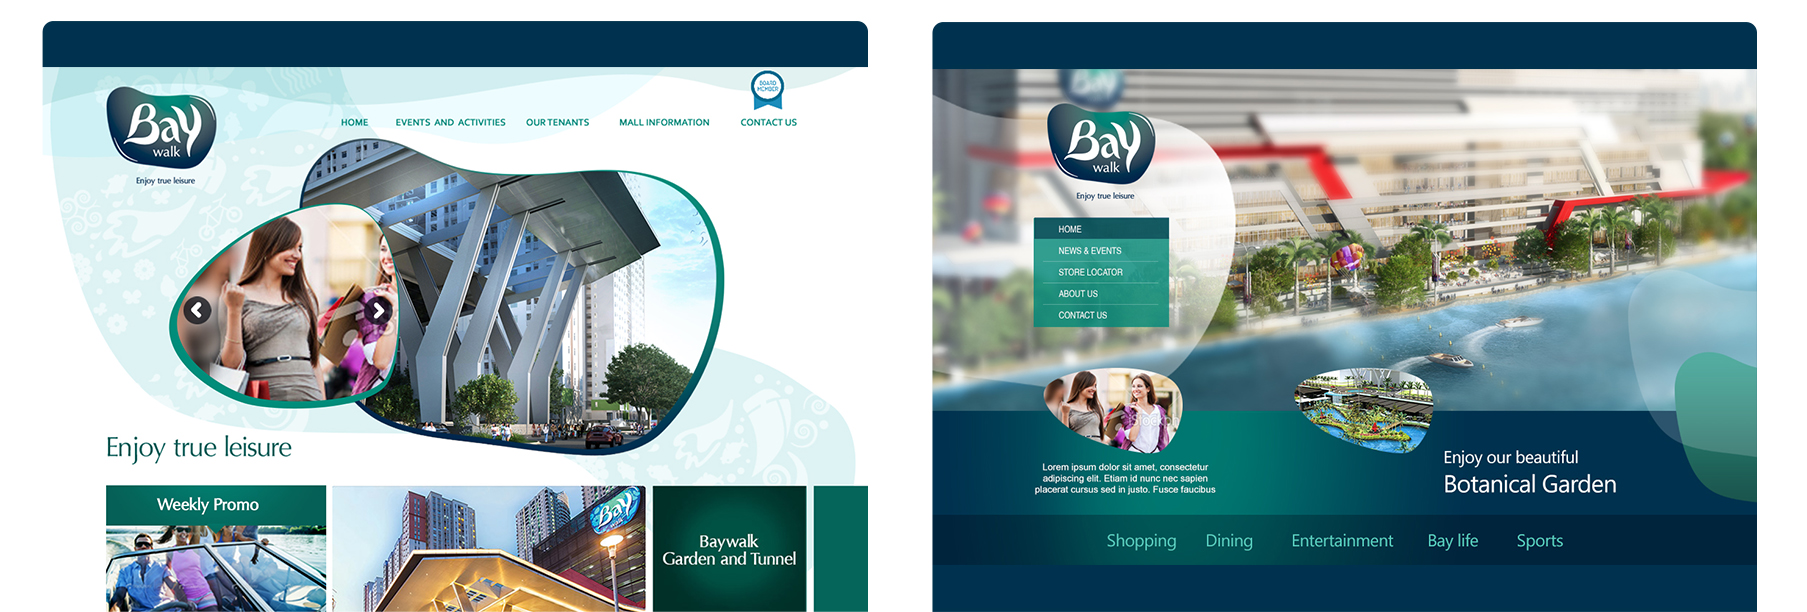 Portfolio design inspiration website, mobile, responsive komunigrafik 2020 for client baywalk mall